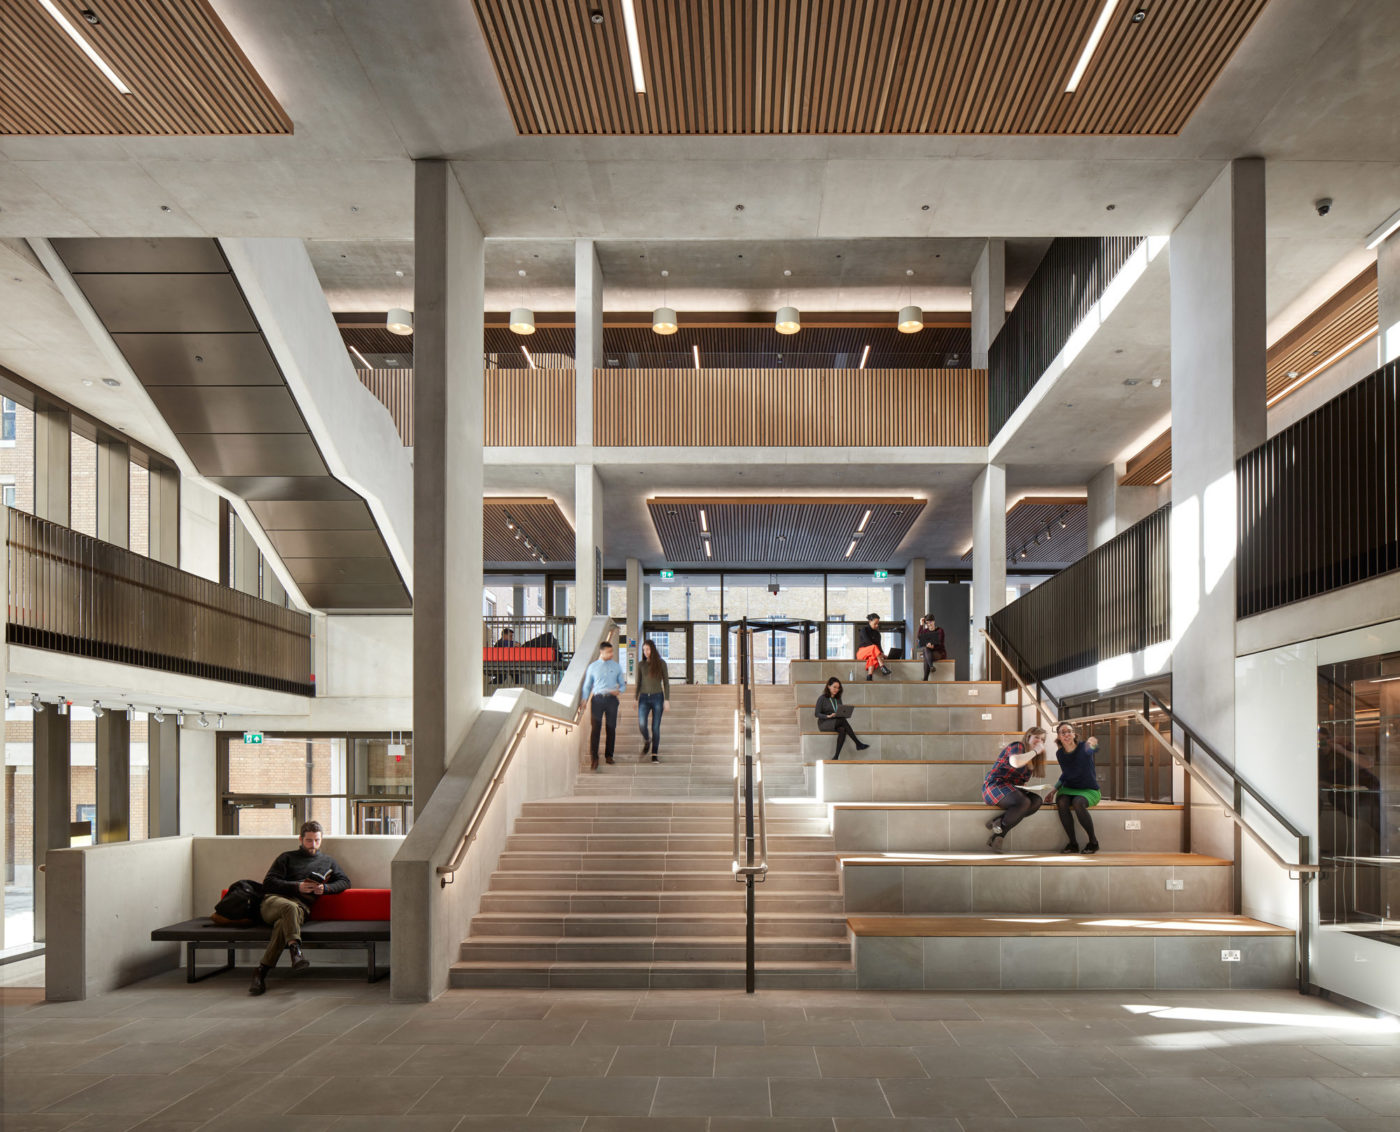 2021 Structural Concrete Student Competition Winners Announced